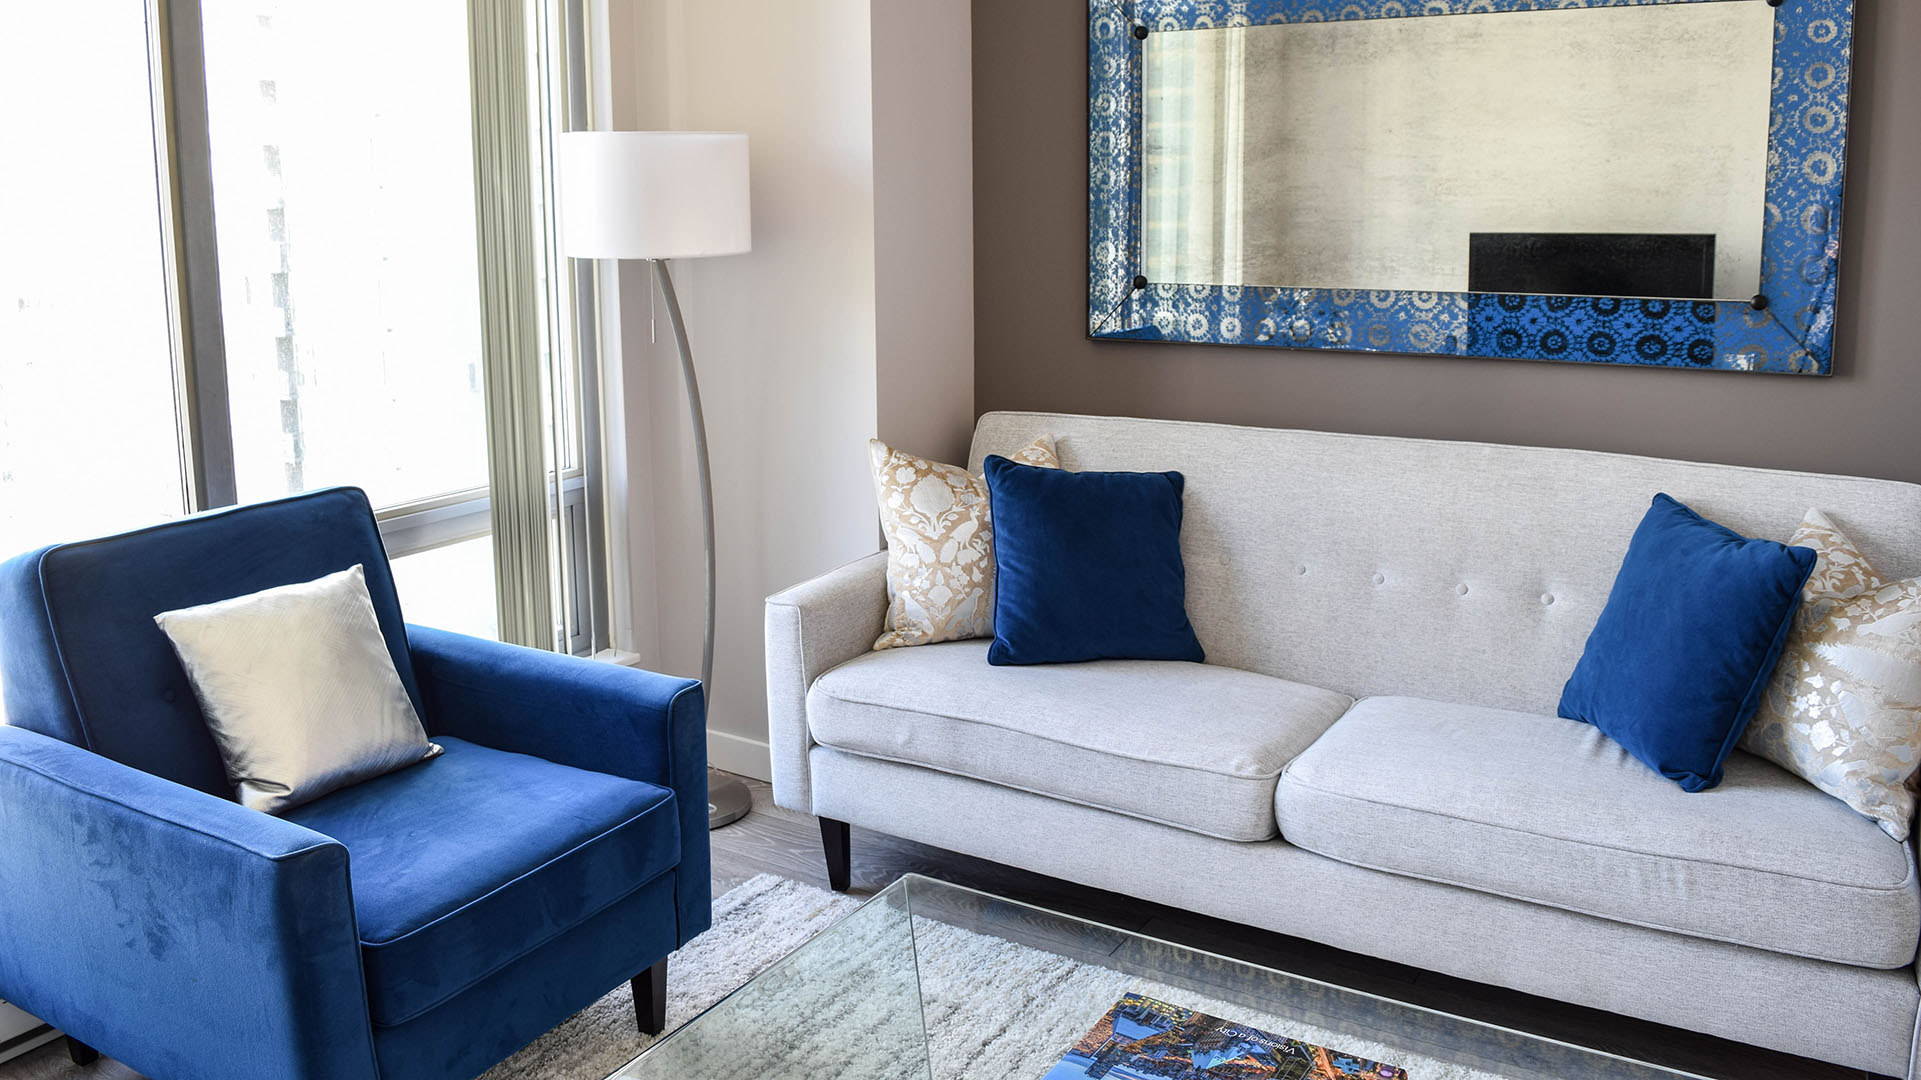 Photo of fully furnished apartment #1203 at The Residences on Georgia, 1288 West Georgia Street, Vancouver, BC